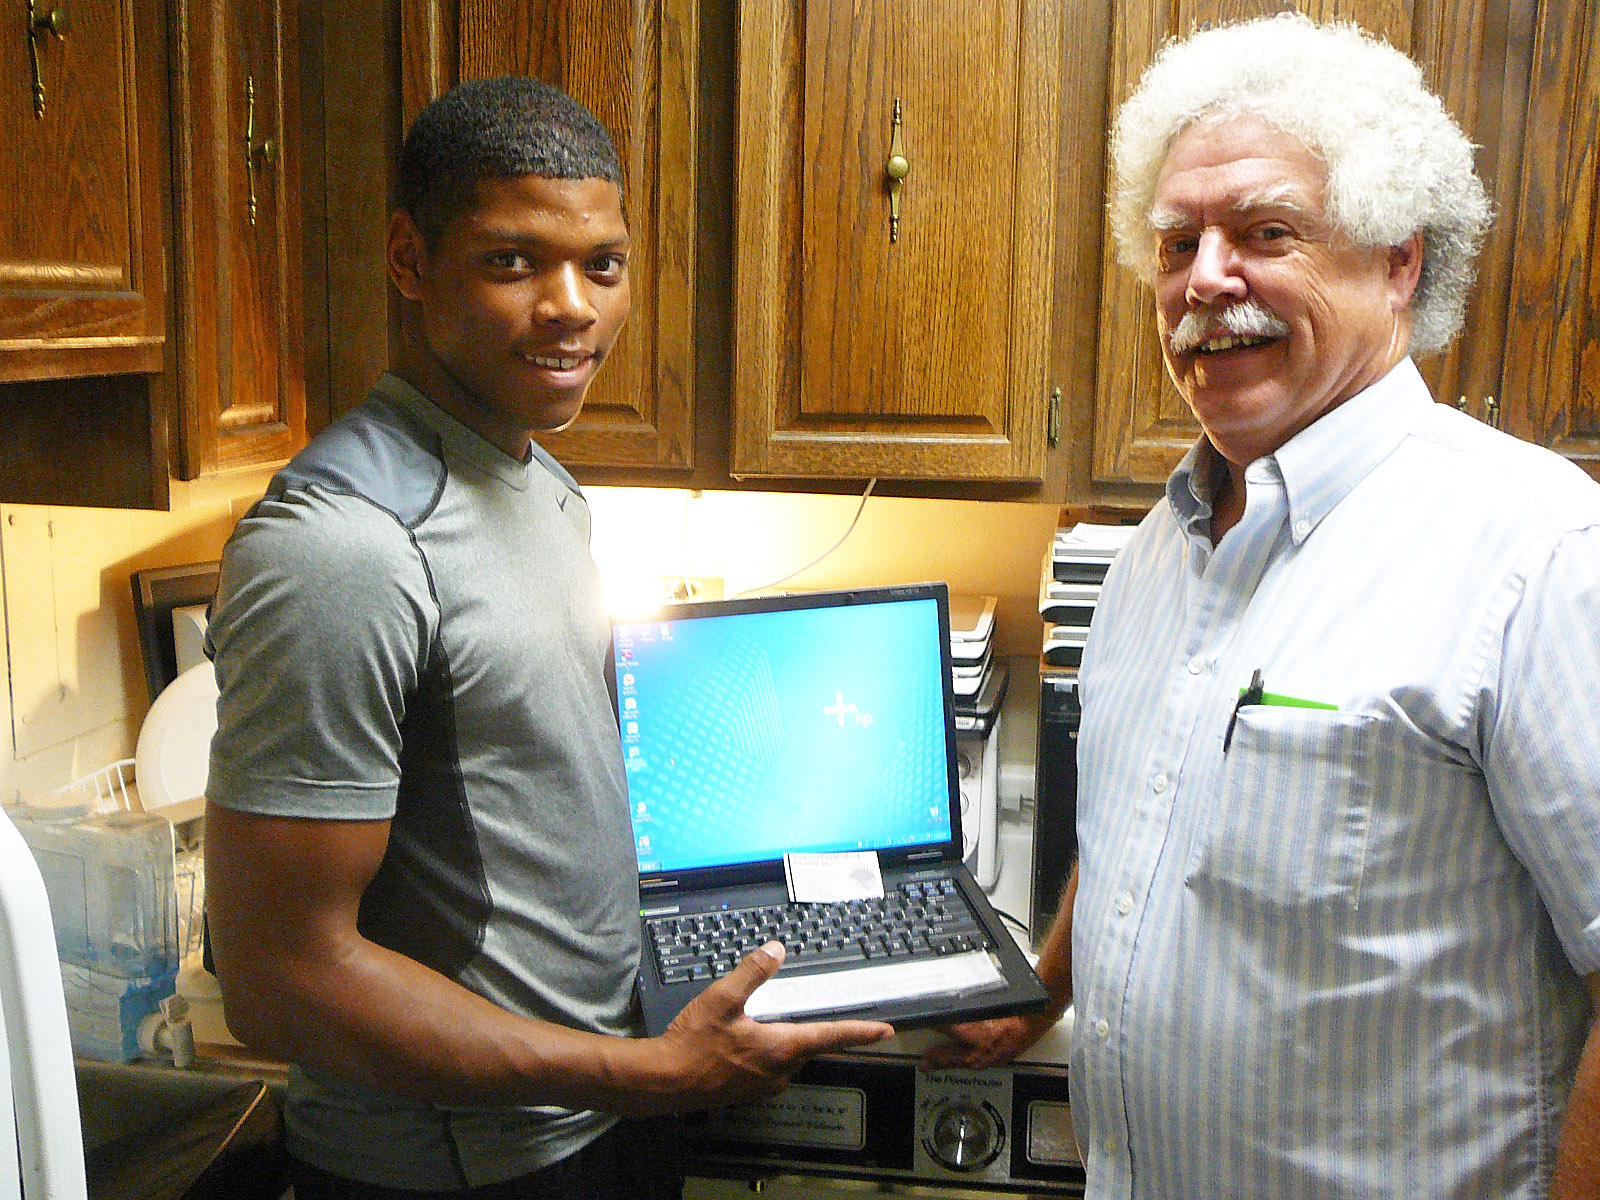 Greenleaf Gardens resident Marlon Mitchell received a notebook computer as part of his scholarship from the Southwest Neighborhood Assembly. He is entering his freshman year at Kent State University. The computer was one of several reconditioned by SWNA's two computer technology interns, Andre Wilkinson and Duane Patterson, both of whom also happen to live at Greenleaf Gardens. (Photo by Perry Klein)